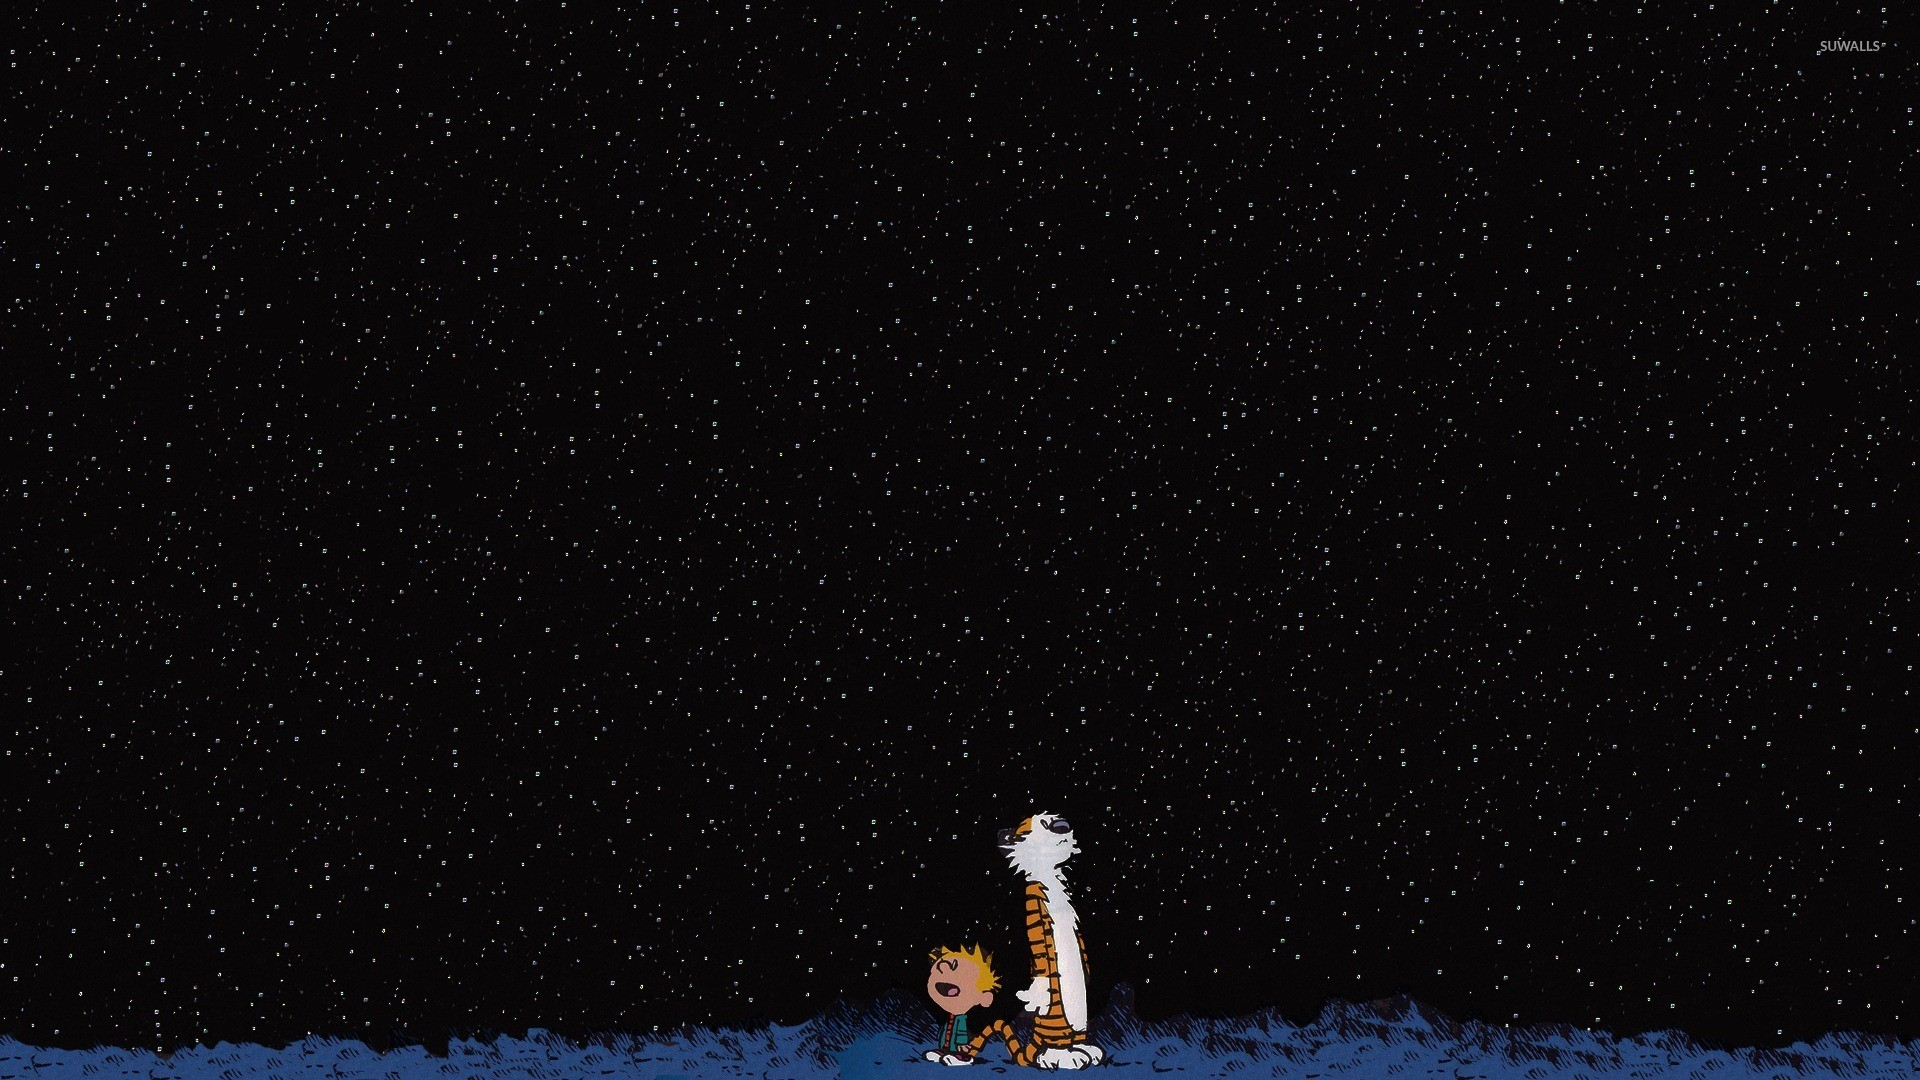 Calvin and Hobbes Stars Wallpaper (69+ images)